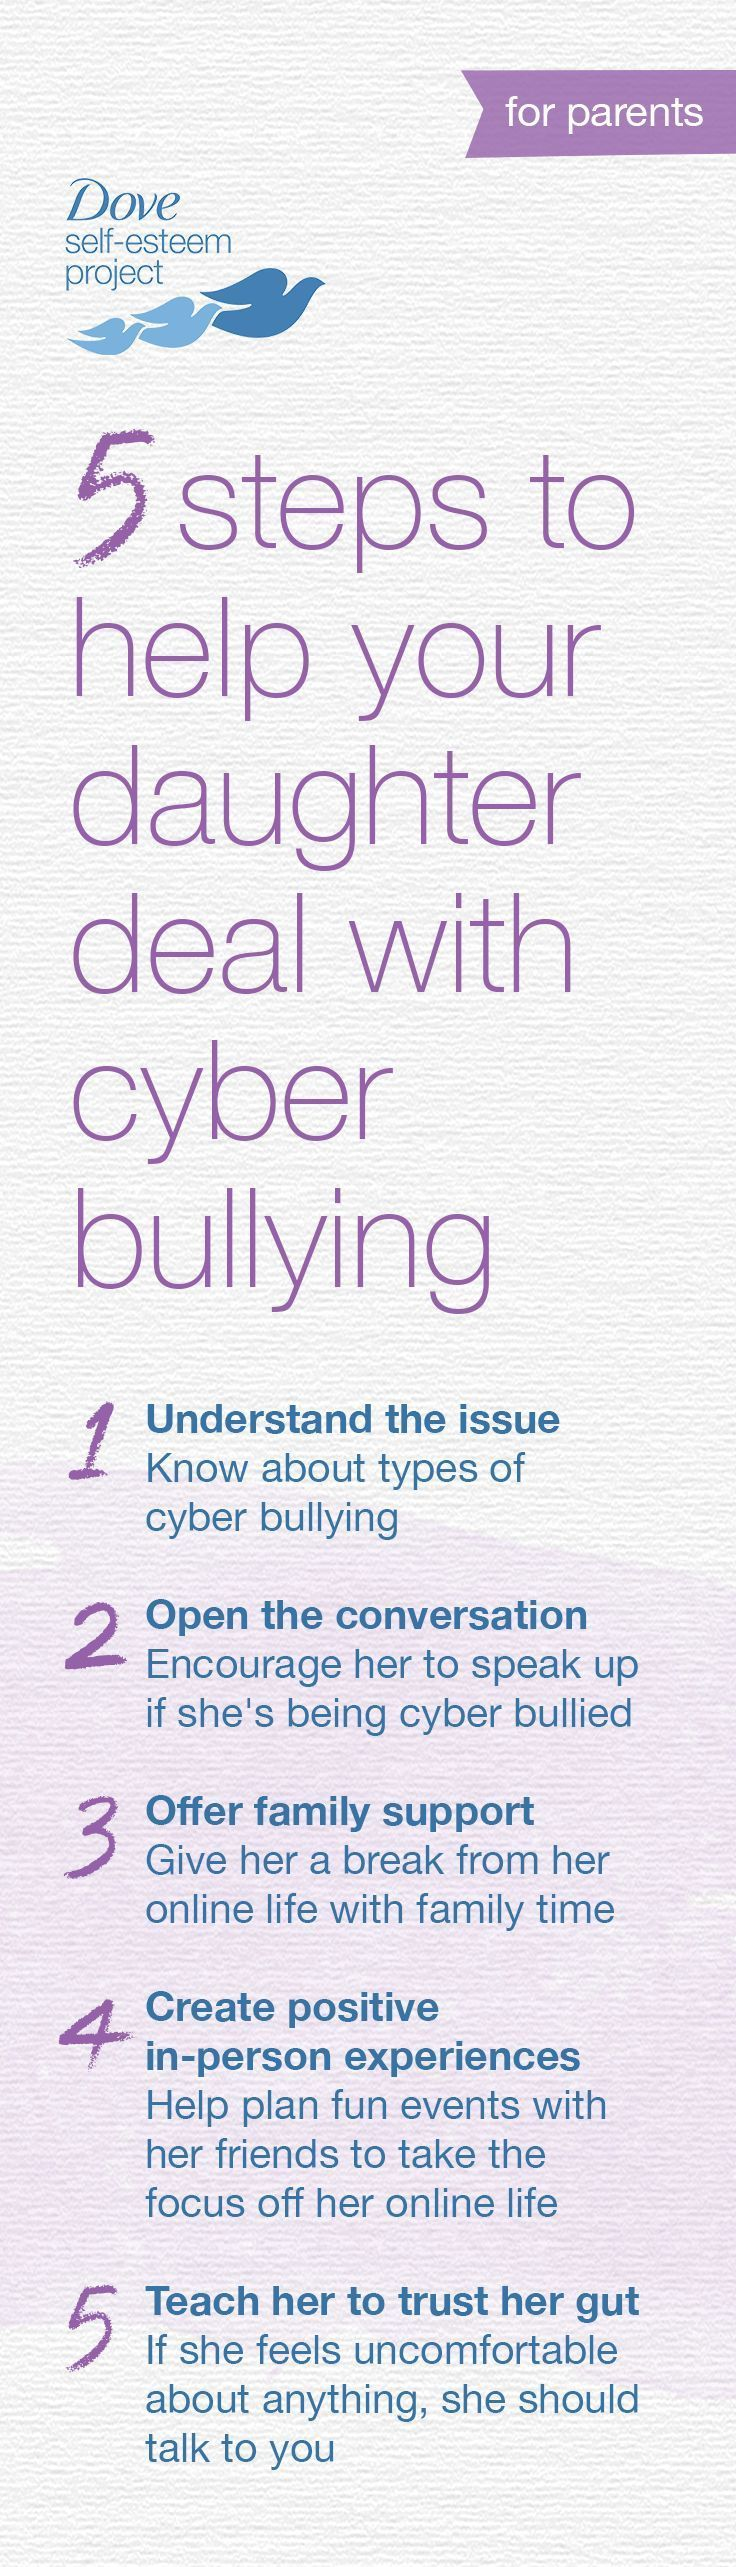 Help your daughter develop protective strategies now to deal with online bullying—it will be an important skill for lifelong self-esteem. Use the checklist we've put together to help understand the issues, support your daughter, and take action to stop cyber bullying in its tracks. #SelfEsteemProject #DovePartner